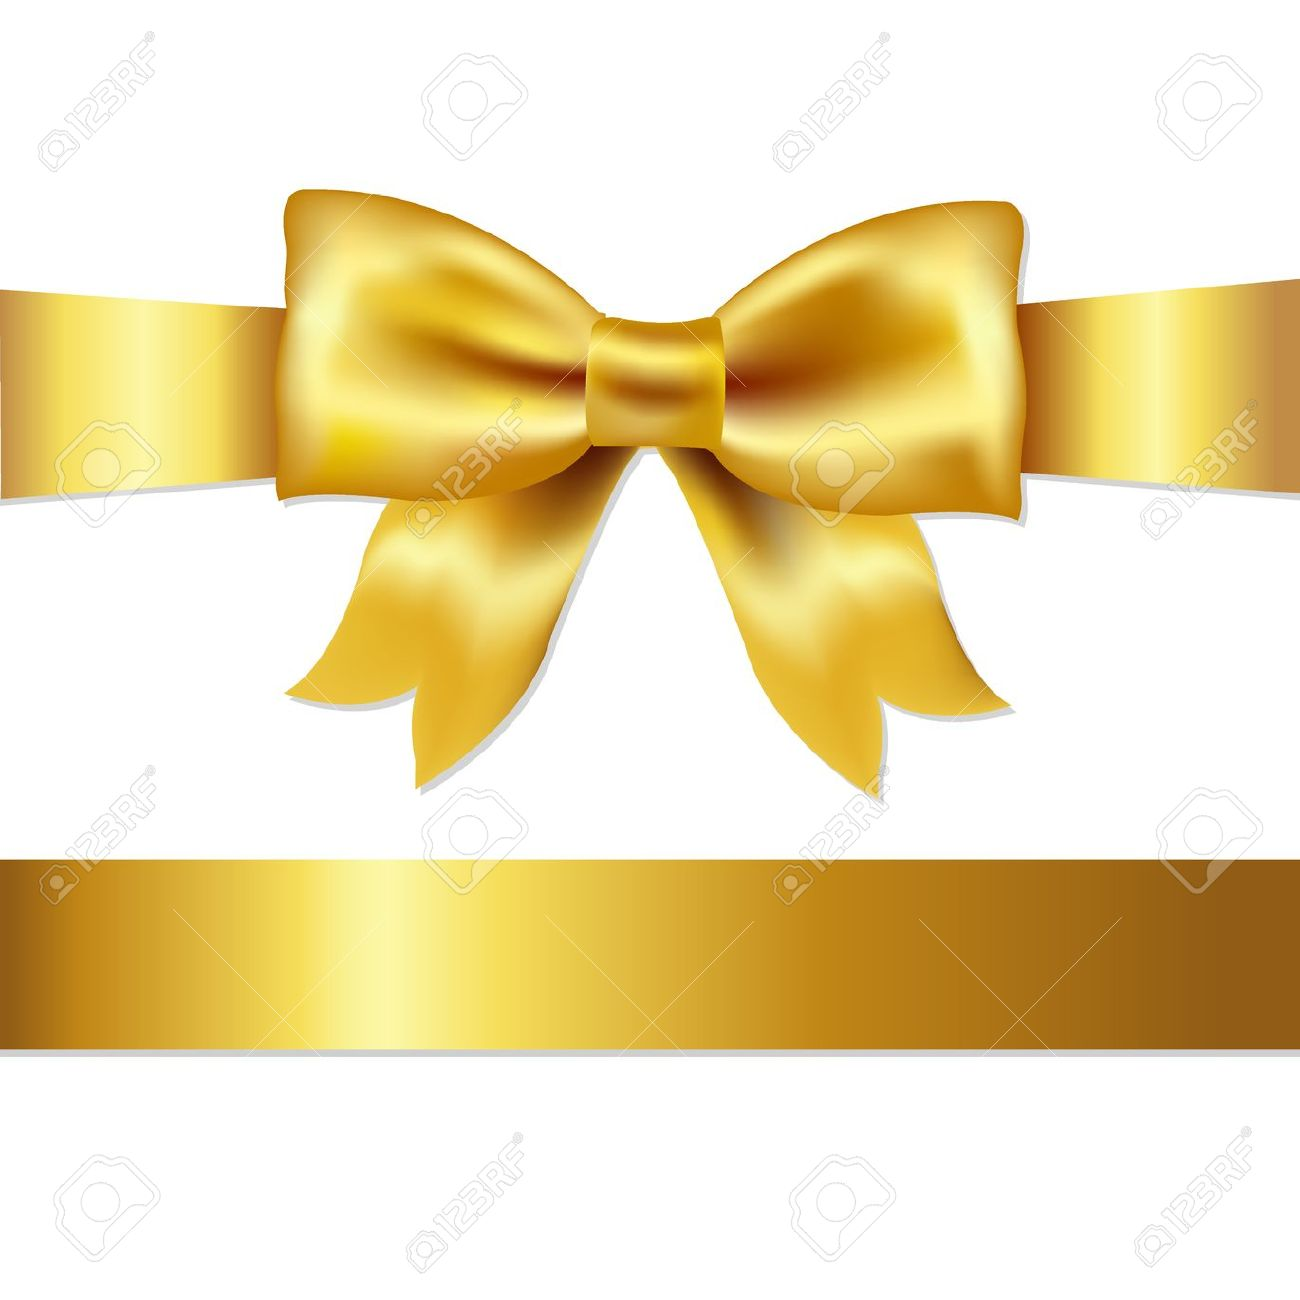 Gold Bow Ribbon Clipart.